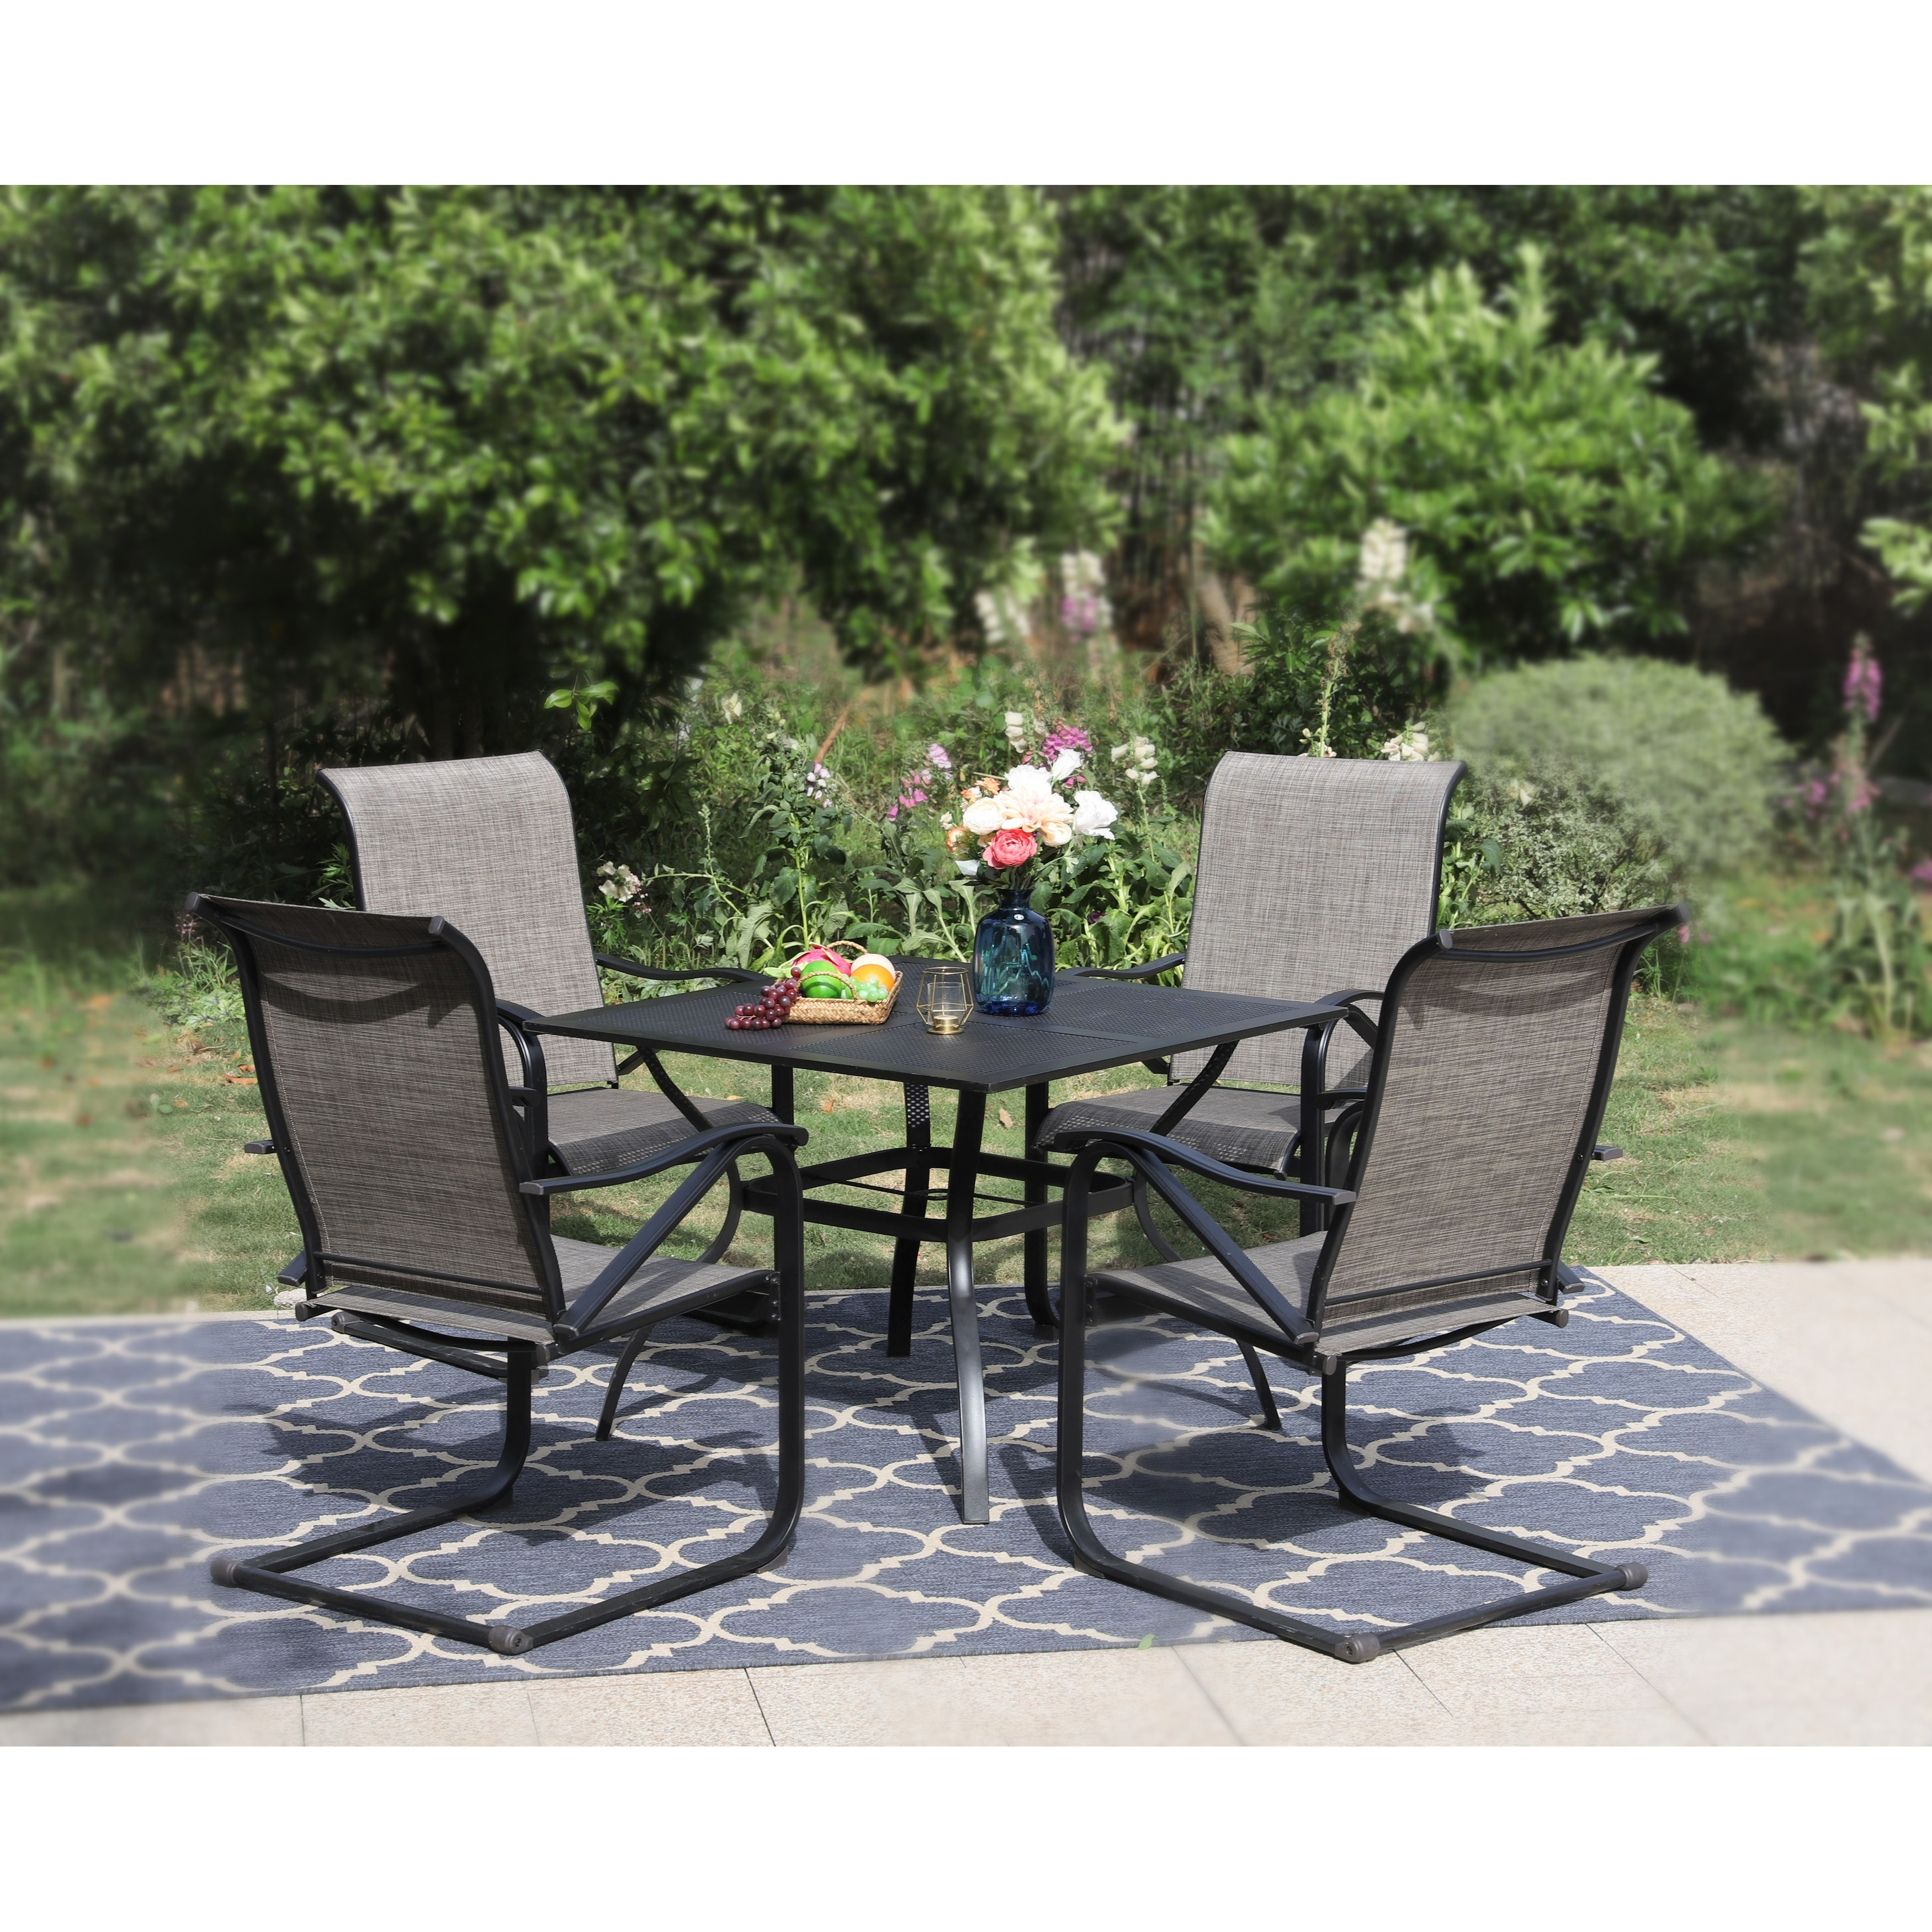 phi villa 5 piece patio furniture dining set with 4 c spring motion textilene metal chairs and steel table with umbrella hole